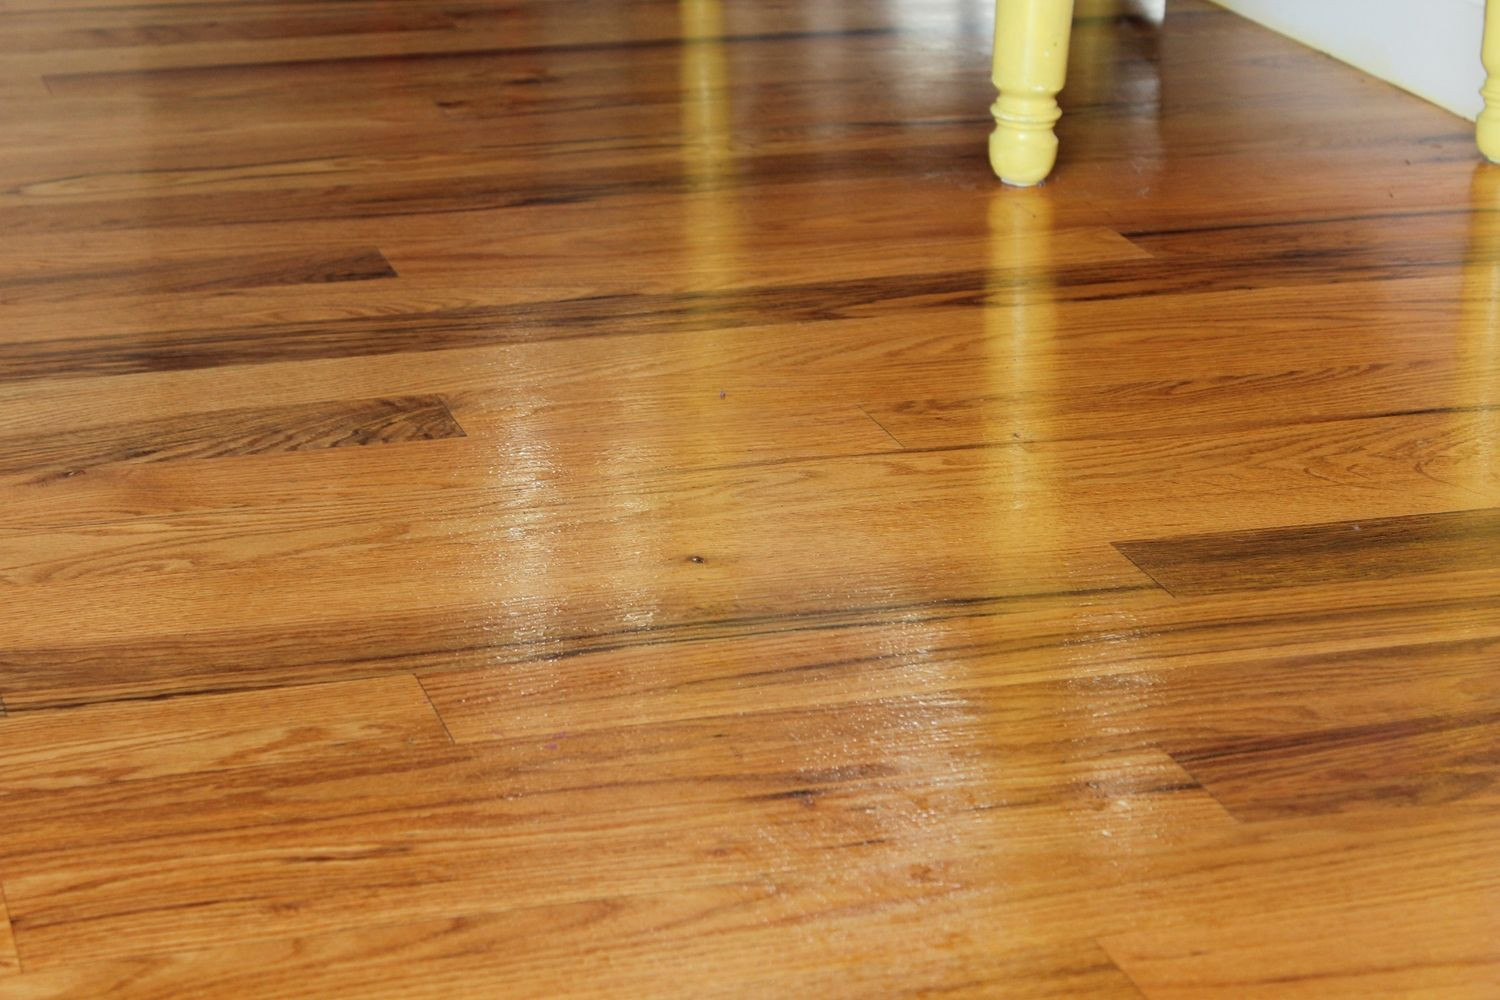 Best ideas about DIY Wood Floor . Save or Pin DIY Natural Wood Floor Polishing Cleaner Now.